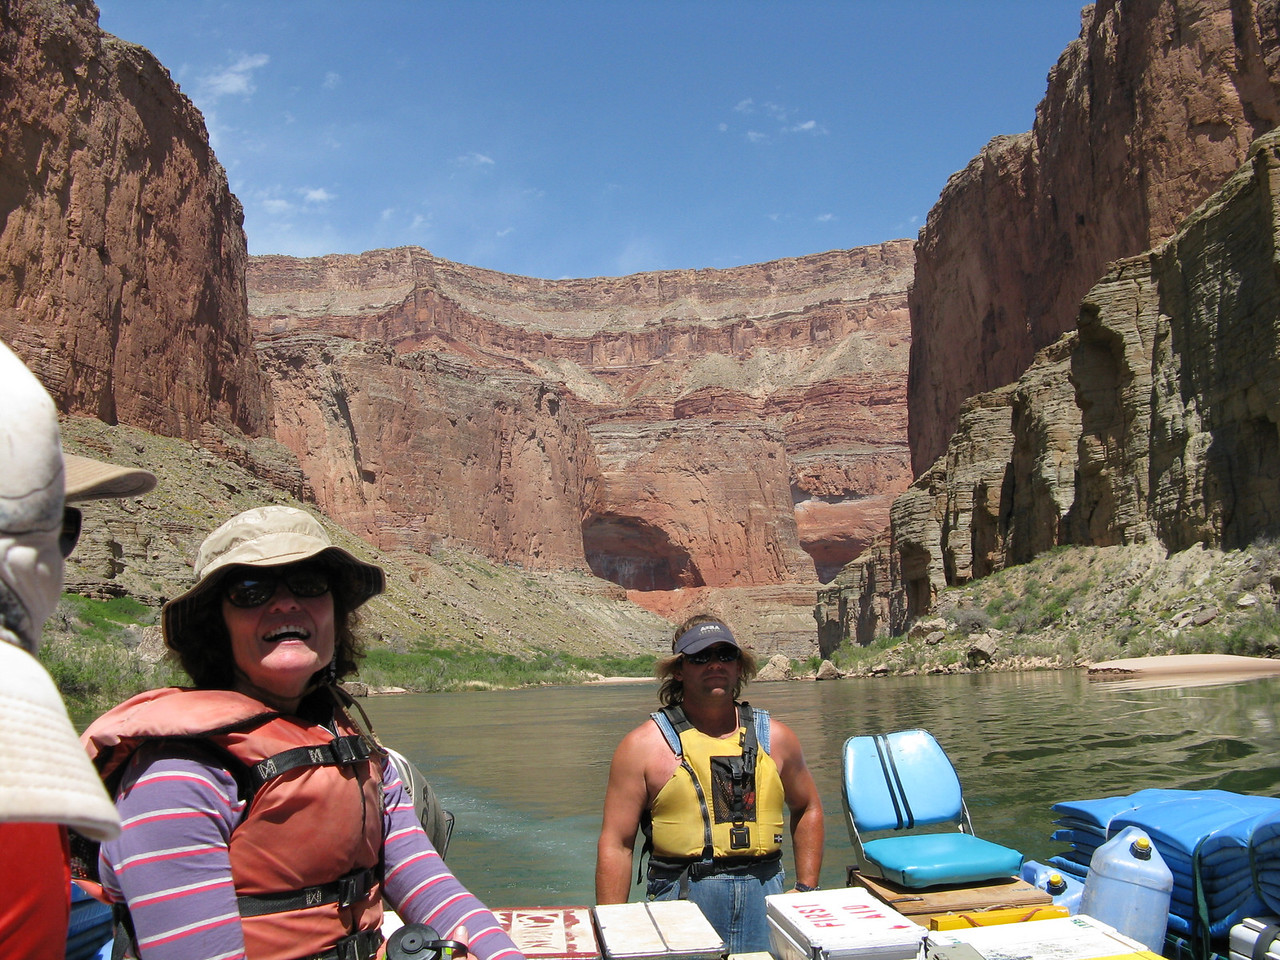 About mile 47.5: An upriver view with one of the Triple Alcoves in the background.